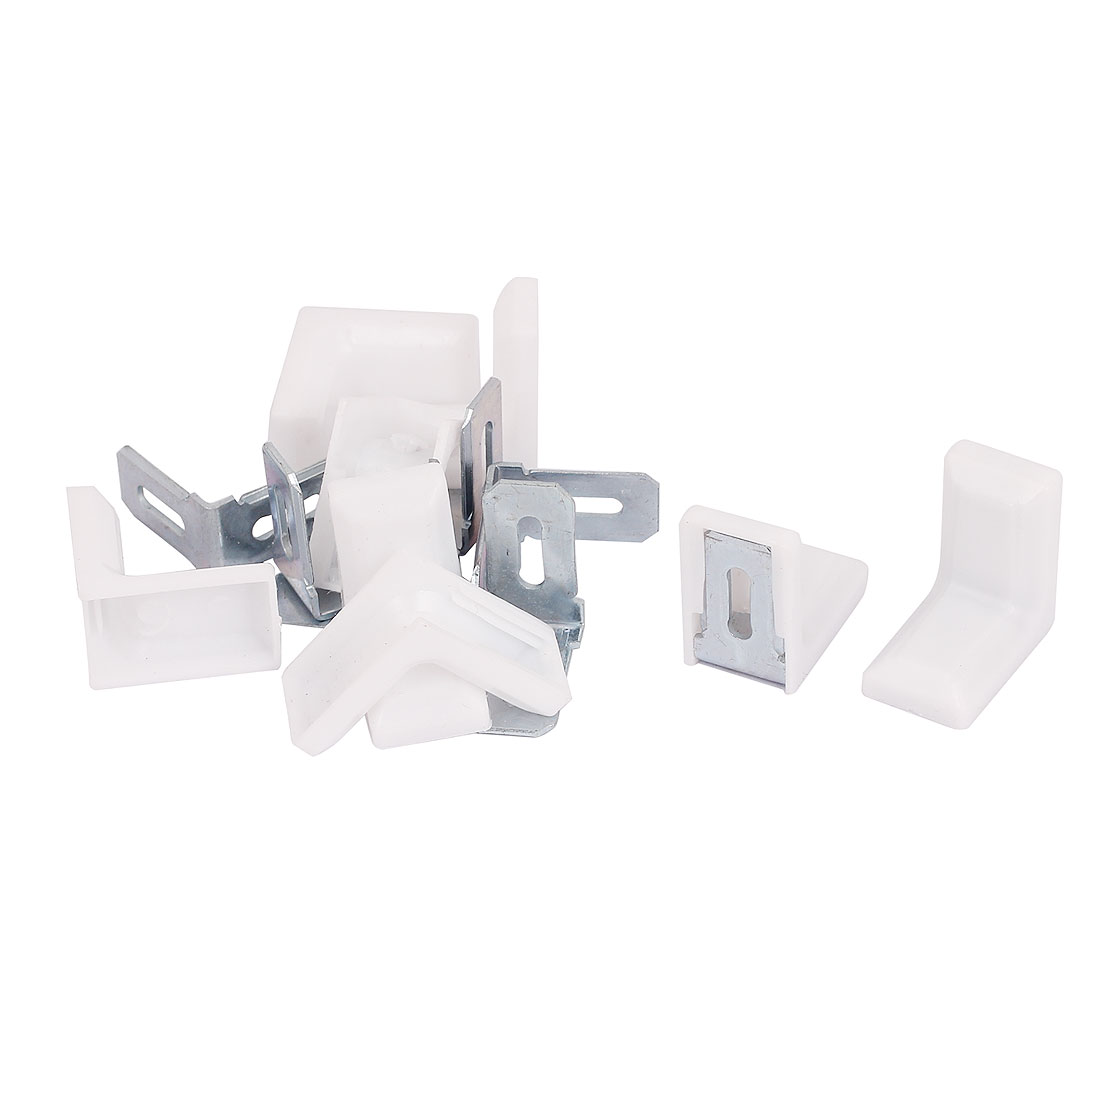 29mmx29mm Cabinet Cupboard Shelf Corner Brace Plate Right Angle Bracket 8pcs